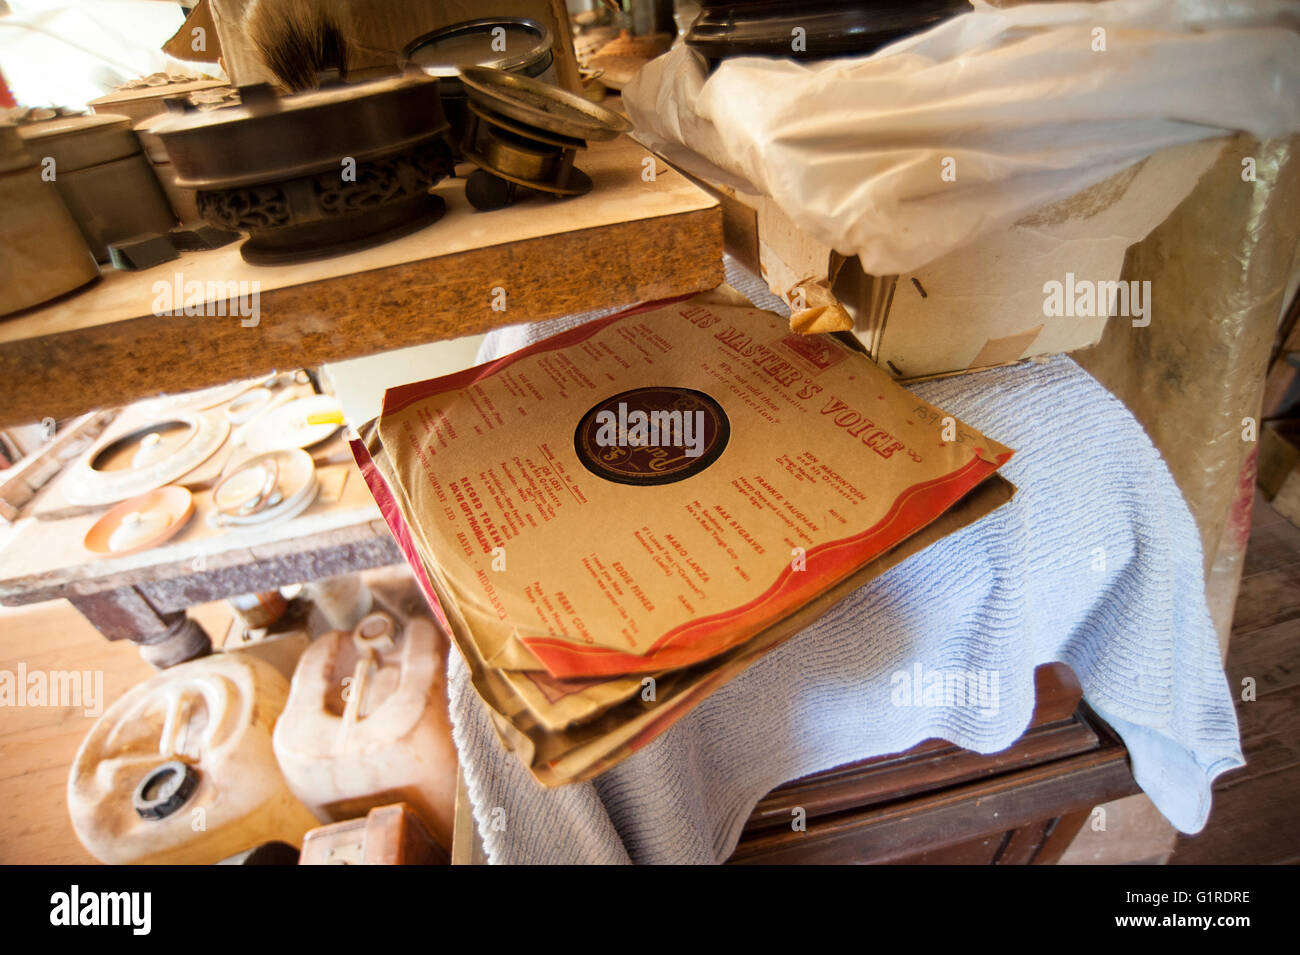 Old 78 rpm Gramophone Records and Record Sleeves - Stock Image